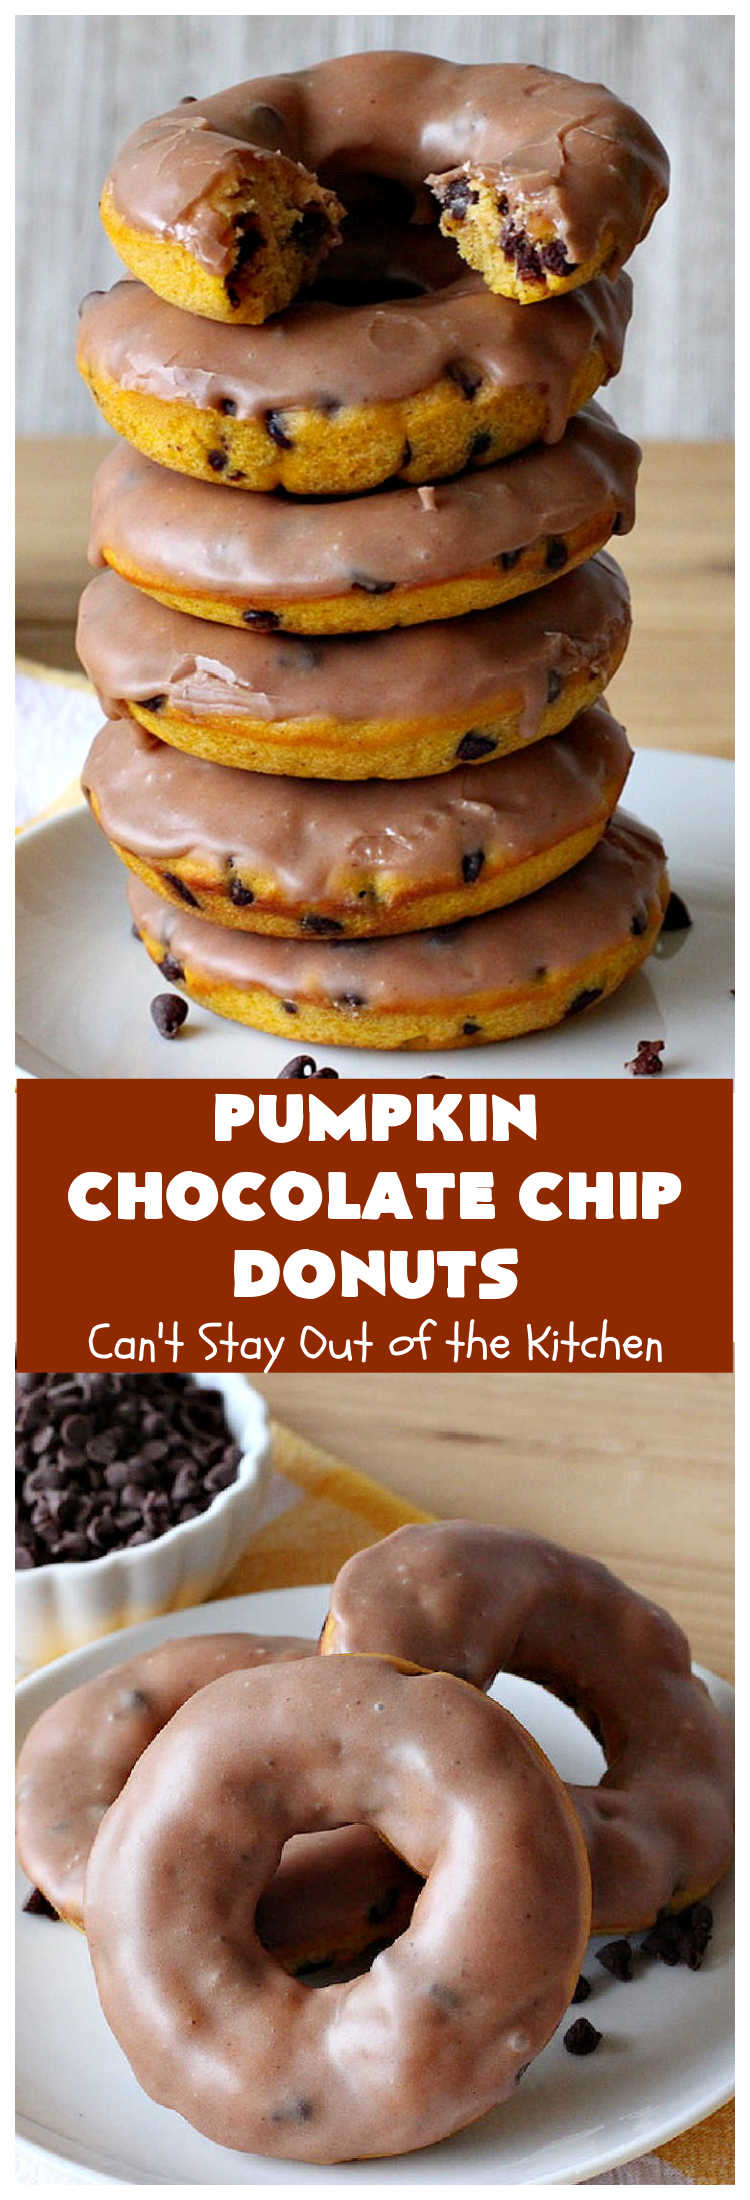 Pumpkin Chocolate Chip Donuts | Can't Stay Out of the Kitchen | these phenomenal #donuts are so mouthwatering. They have double the #chocolate & double the #pumpkin flavor. You'll be drooling over every mouthful. Highly recommended for #Thanksgiving or #Christmas #Breakfast. #Holiday #HolidayBreakfast #PumpkinDonuts #ChocolateChipDonuts #fall #FallBaking #PumpkinChocolateChipDonuts #ChocolateChips